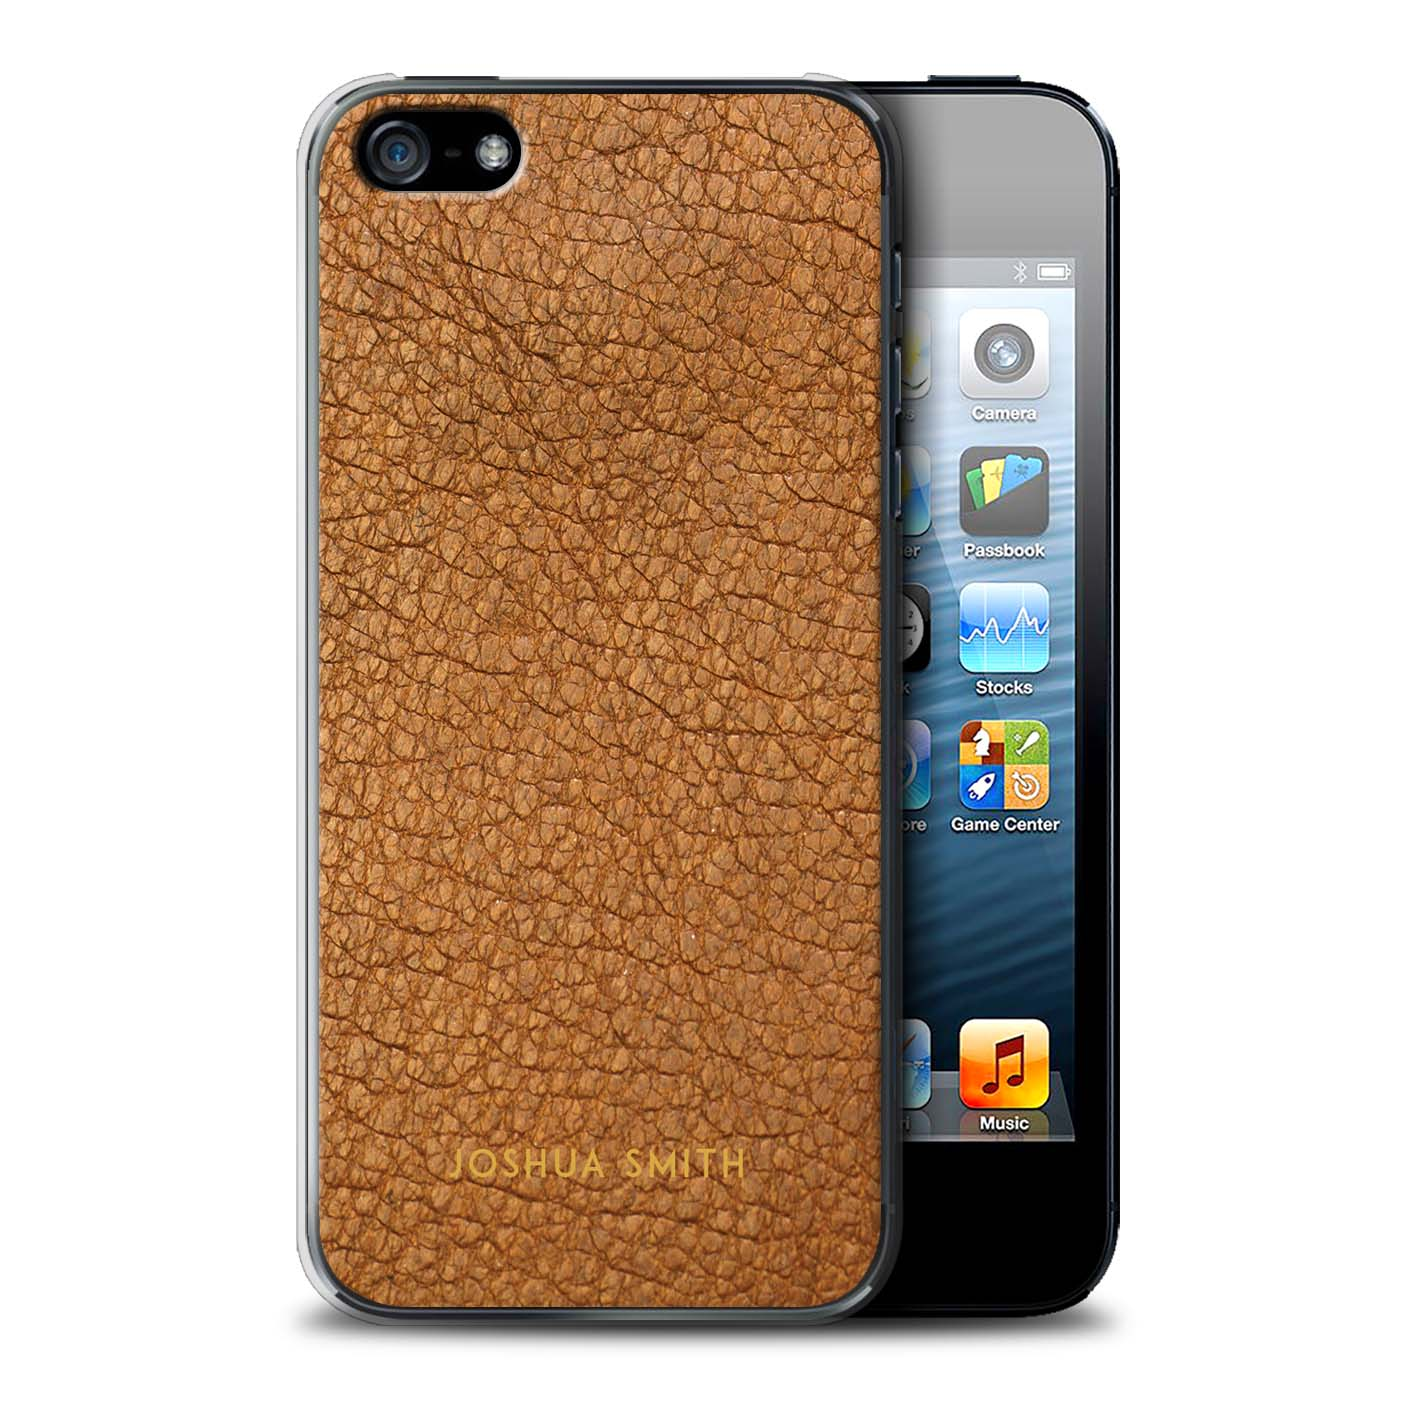 Personnalise-Effet-Cuir-Coutume-Coque-pour-Apple-iPhone-SE-Initiales-Etui-Housse